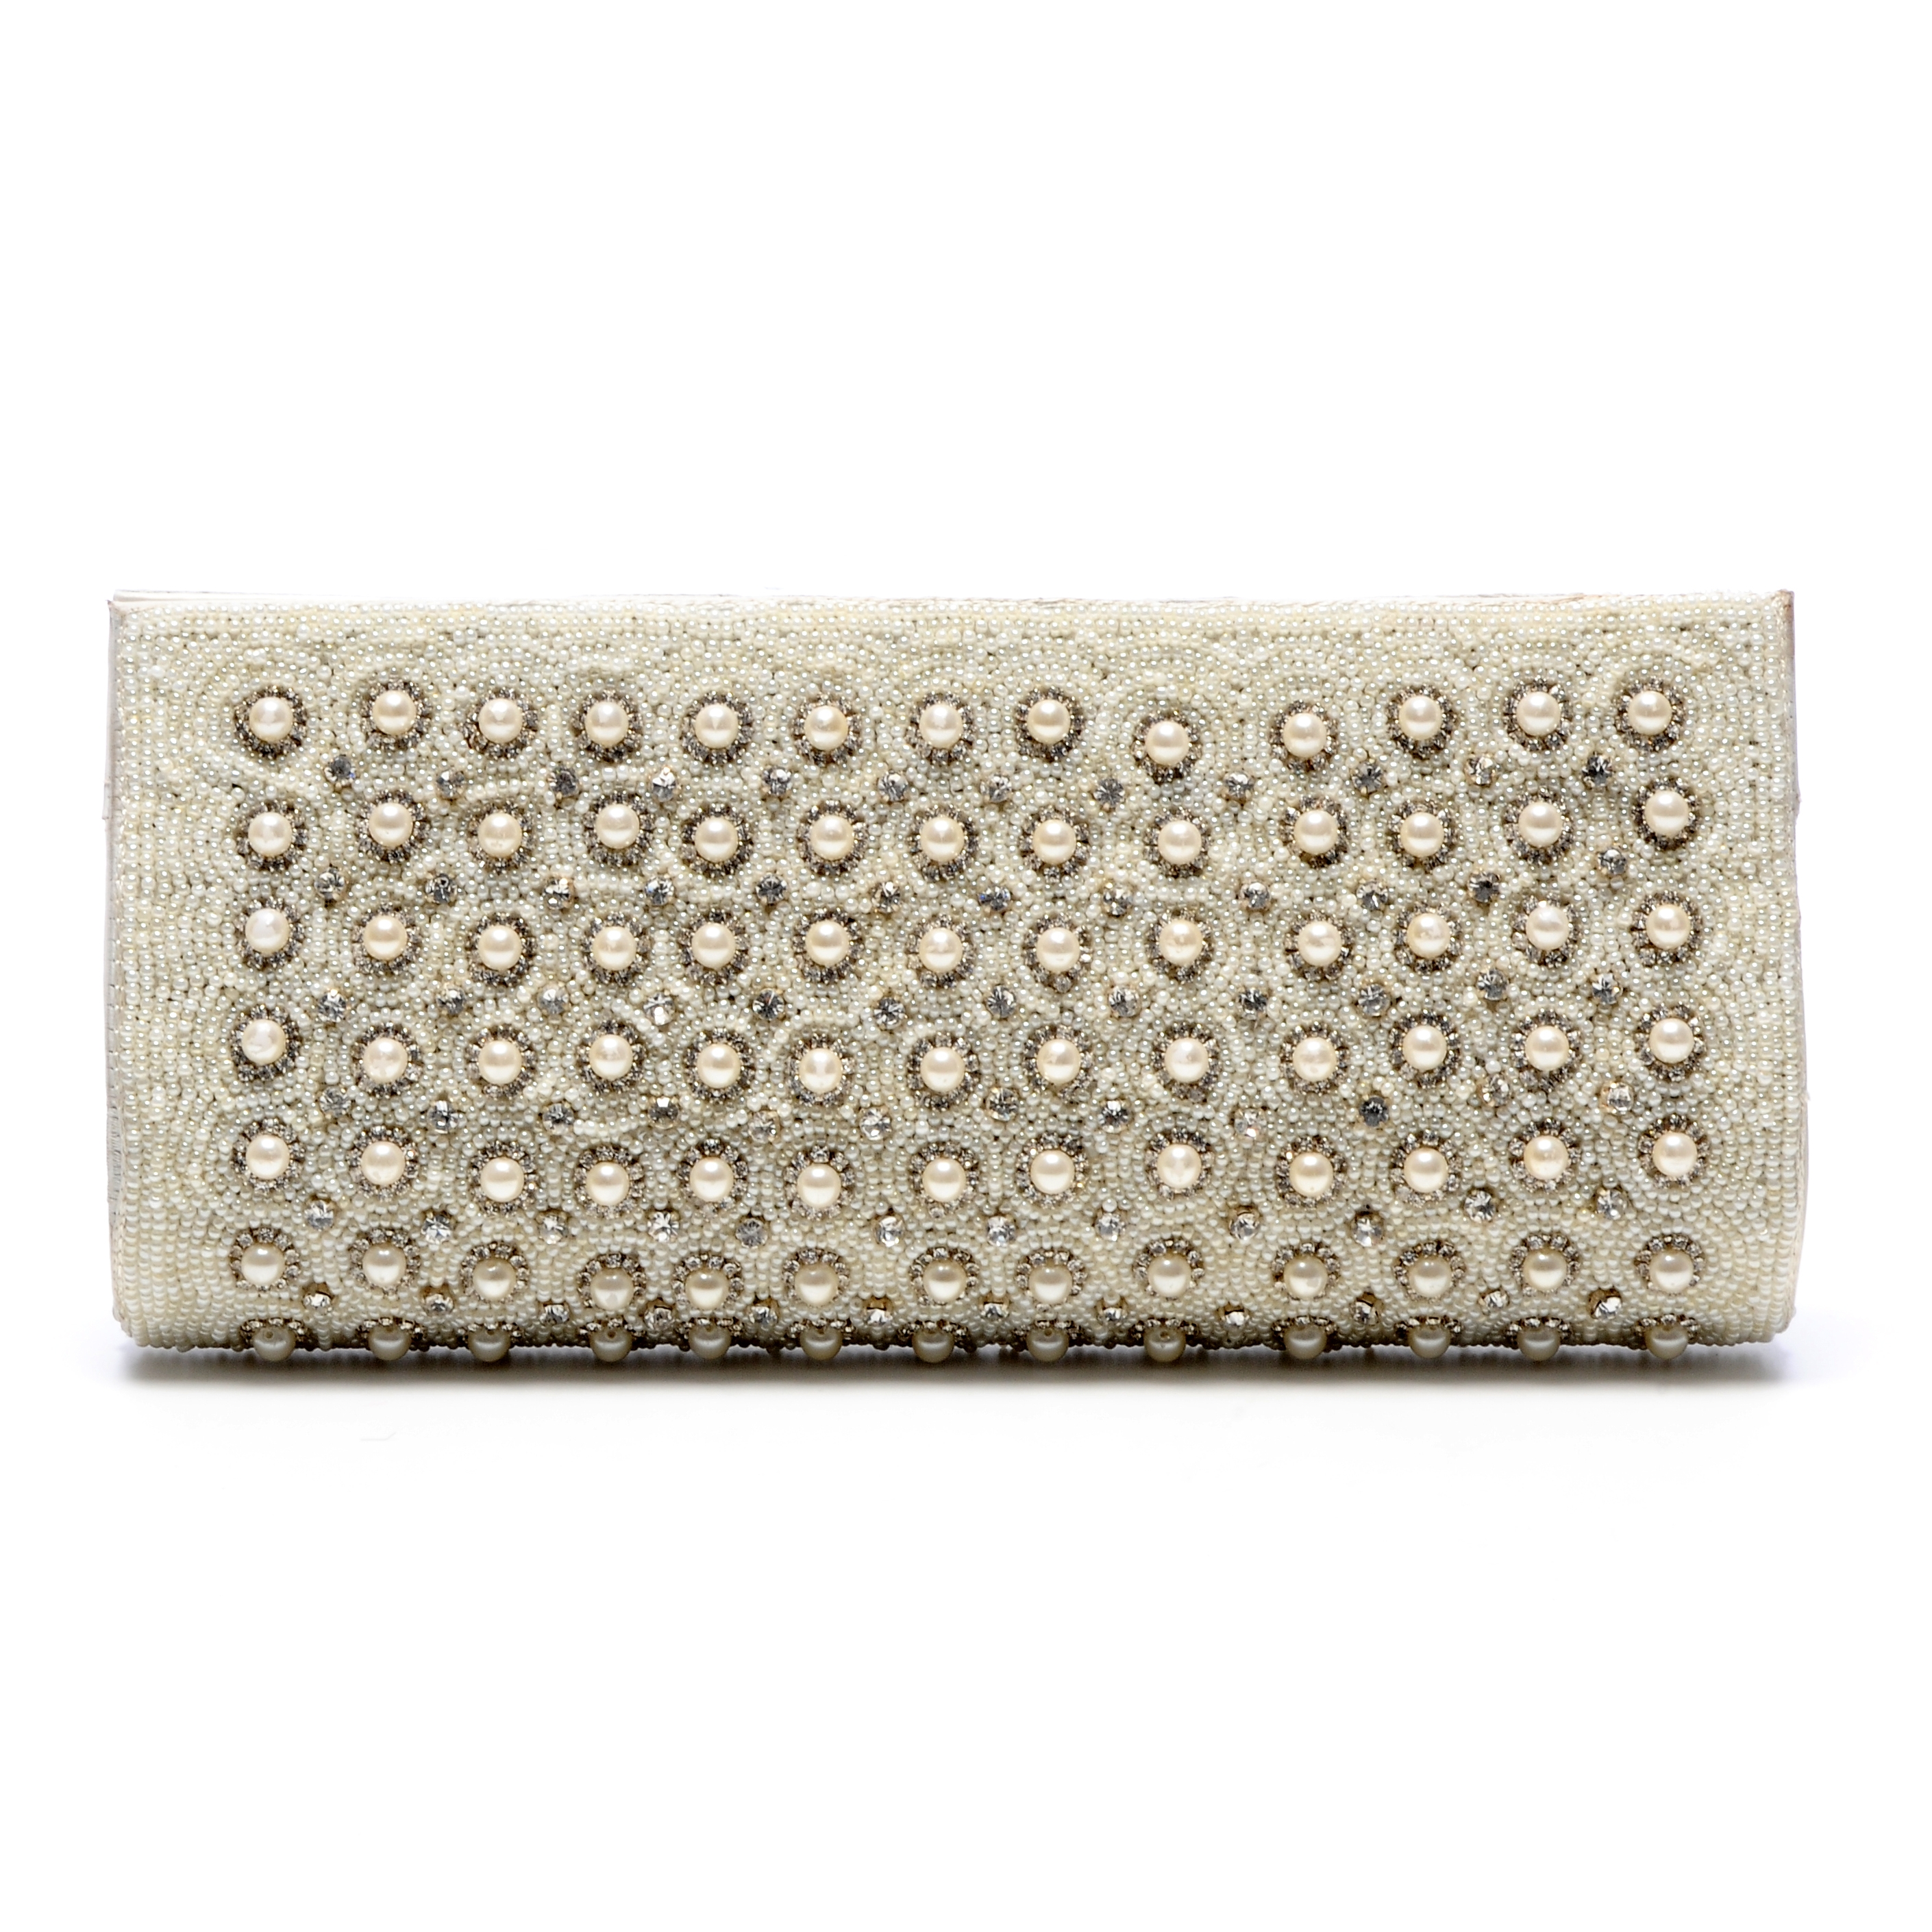 Royal-wedding-ivory-bridal-clutch-wedding-accessories-texture-2011-wedding-trends-bridal-style-2.original